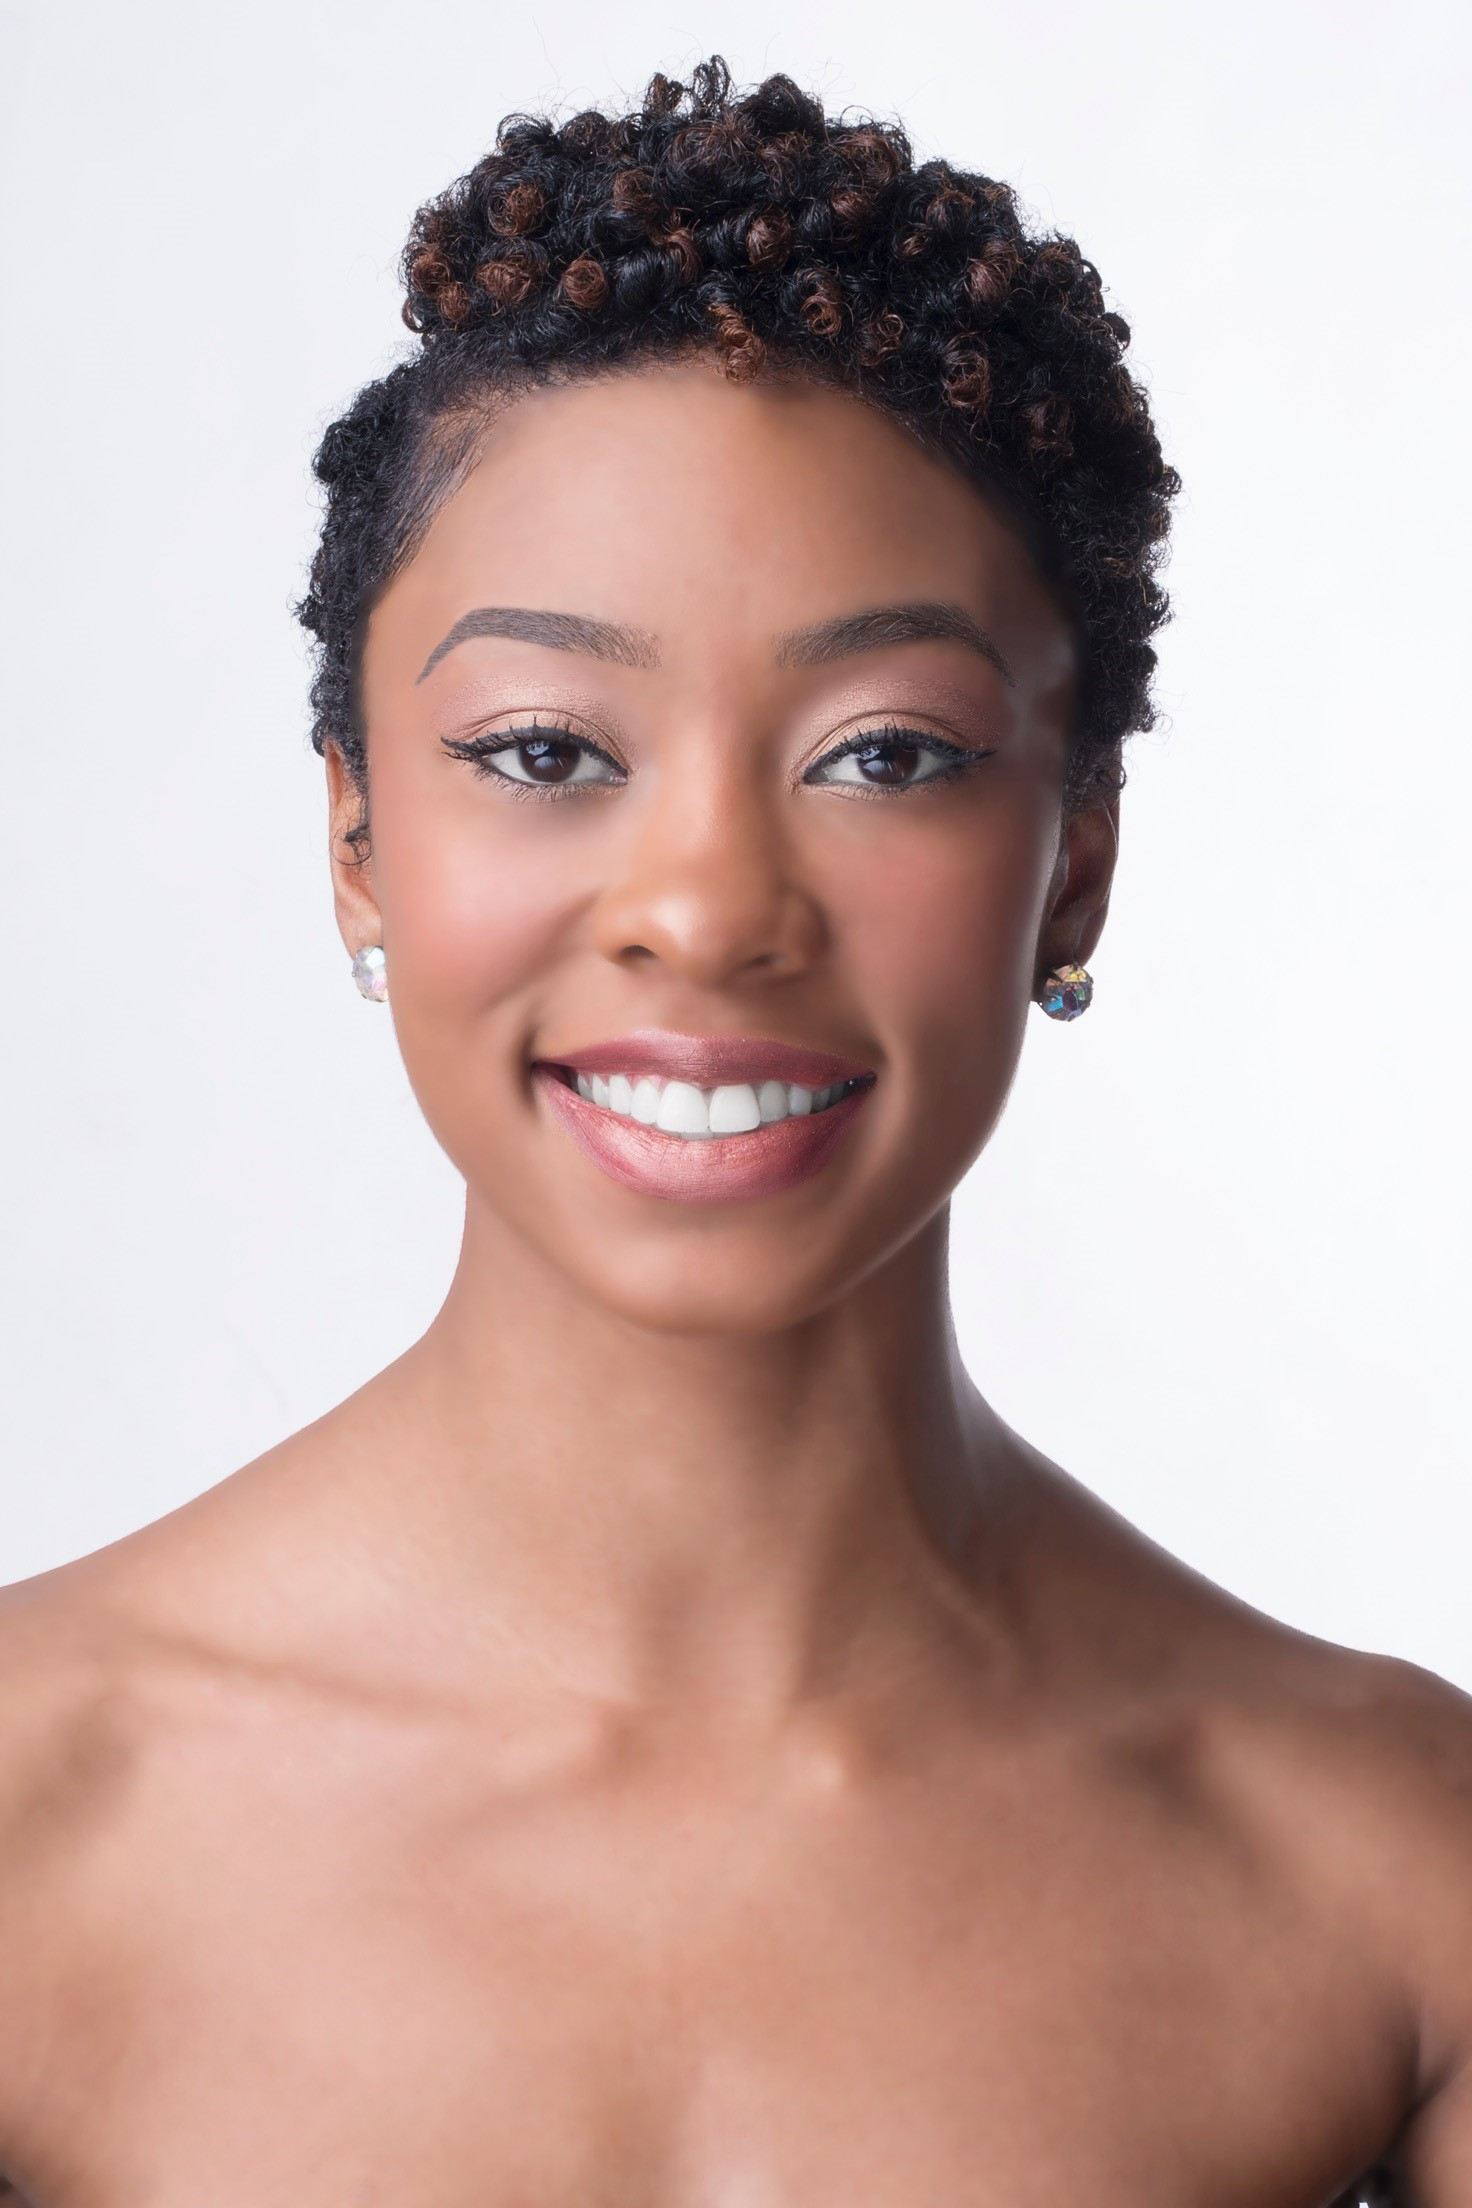 """Psalm Gadson - Psalm Gadson, a native of Kennesaw, Georgia, is a graduate from Alabama State University's Bachelors of Fine Arts Program in Dance. Her training began at The Metayer Conservatory for the Arts, under the direction of Regine Metayer. While attending her university she became a founding member of Beta Phi Alpha Dance Honor Society, and the chair of the organization's marketing committee. In 2016 she was the lead angel of """"Nutcracker Atoomba!"""" under the direction of James Atkinson. For two consecutive years Ms. Gadson has performed at the International Association of Blacks in Dance conference. She has worked with artist such as Micheal Medcalf, Anthony Burrell, Deshonna Pepper-Robertson, Allyne Gatrell, and Terrance Greene. Ms.Gadson is excited to see what her future holds, and thanks her loved ones and mentors for the love and support."""